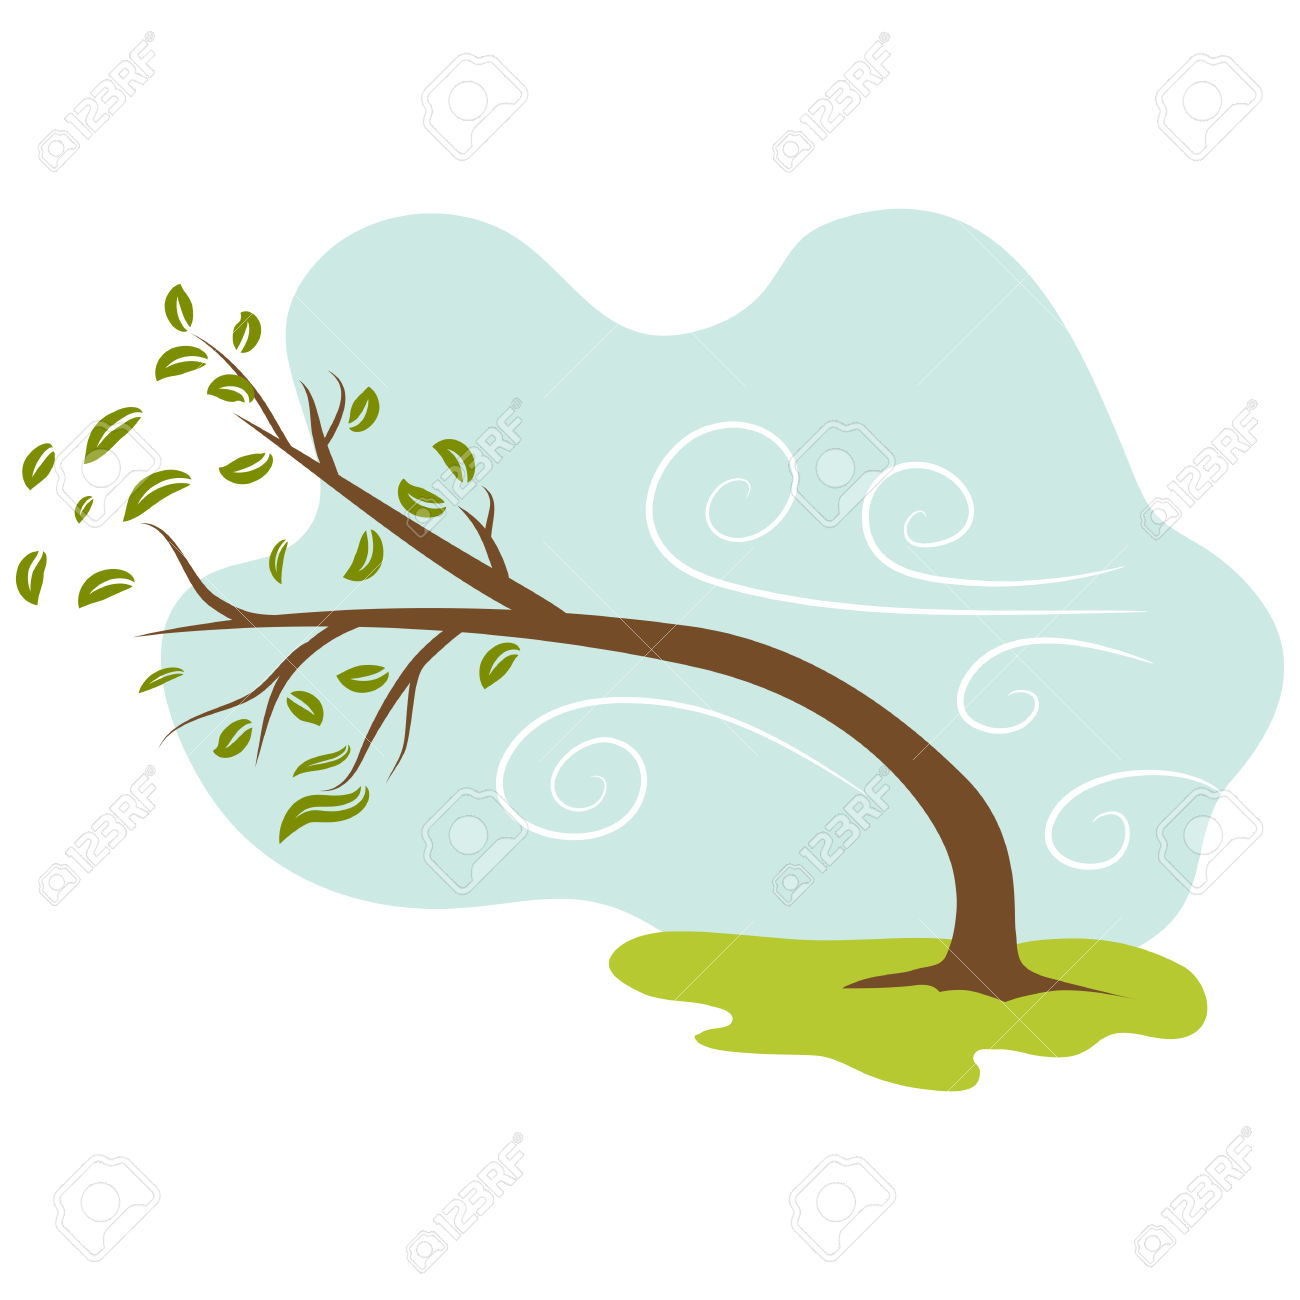 816 Windy free clipart.